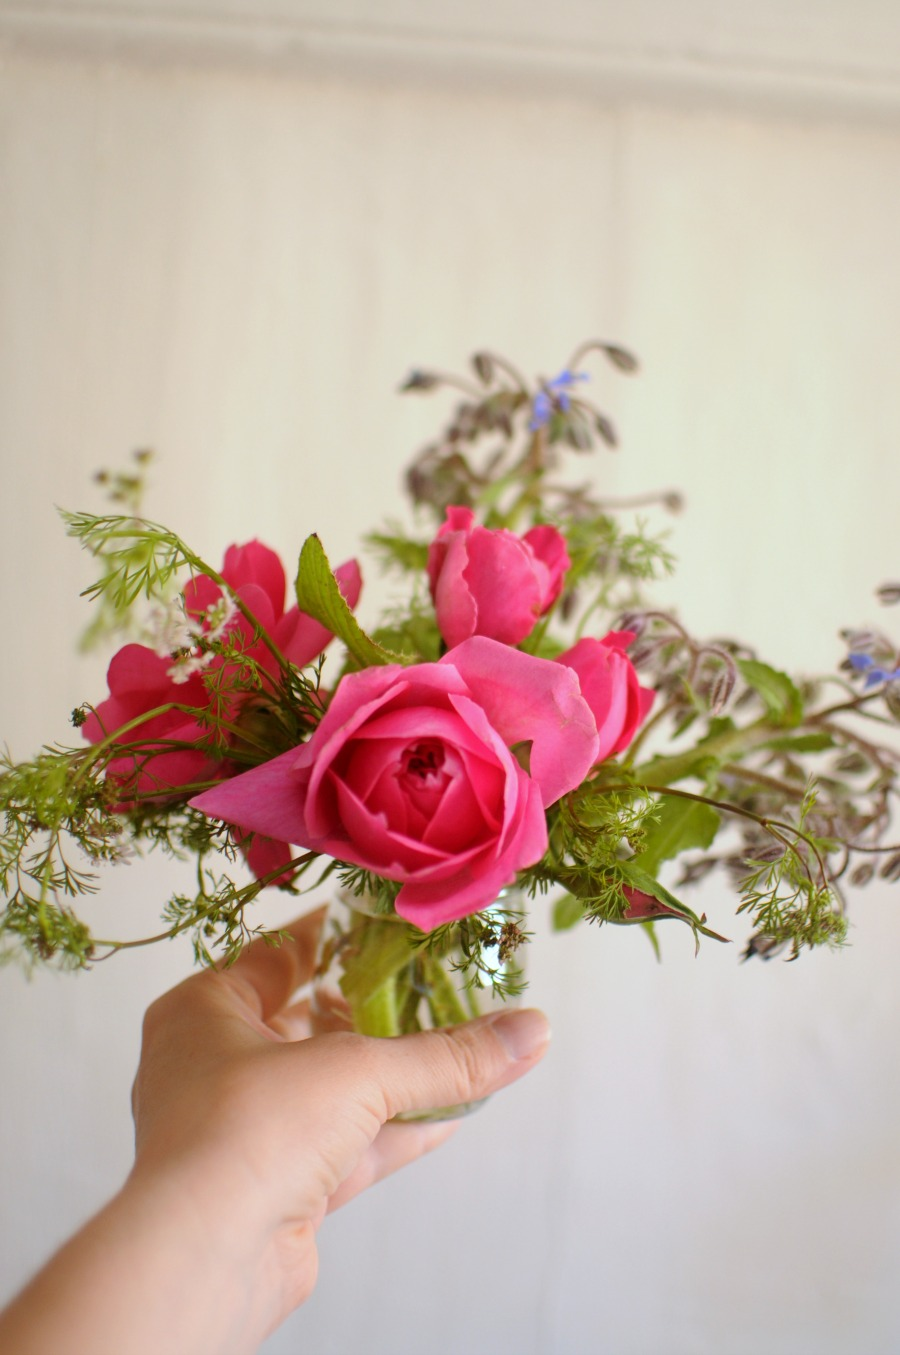 bring wilted flowers back to life